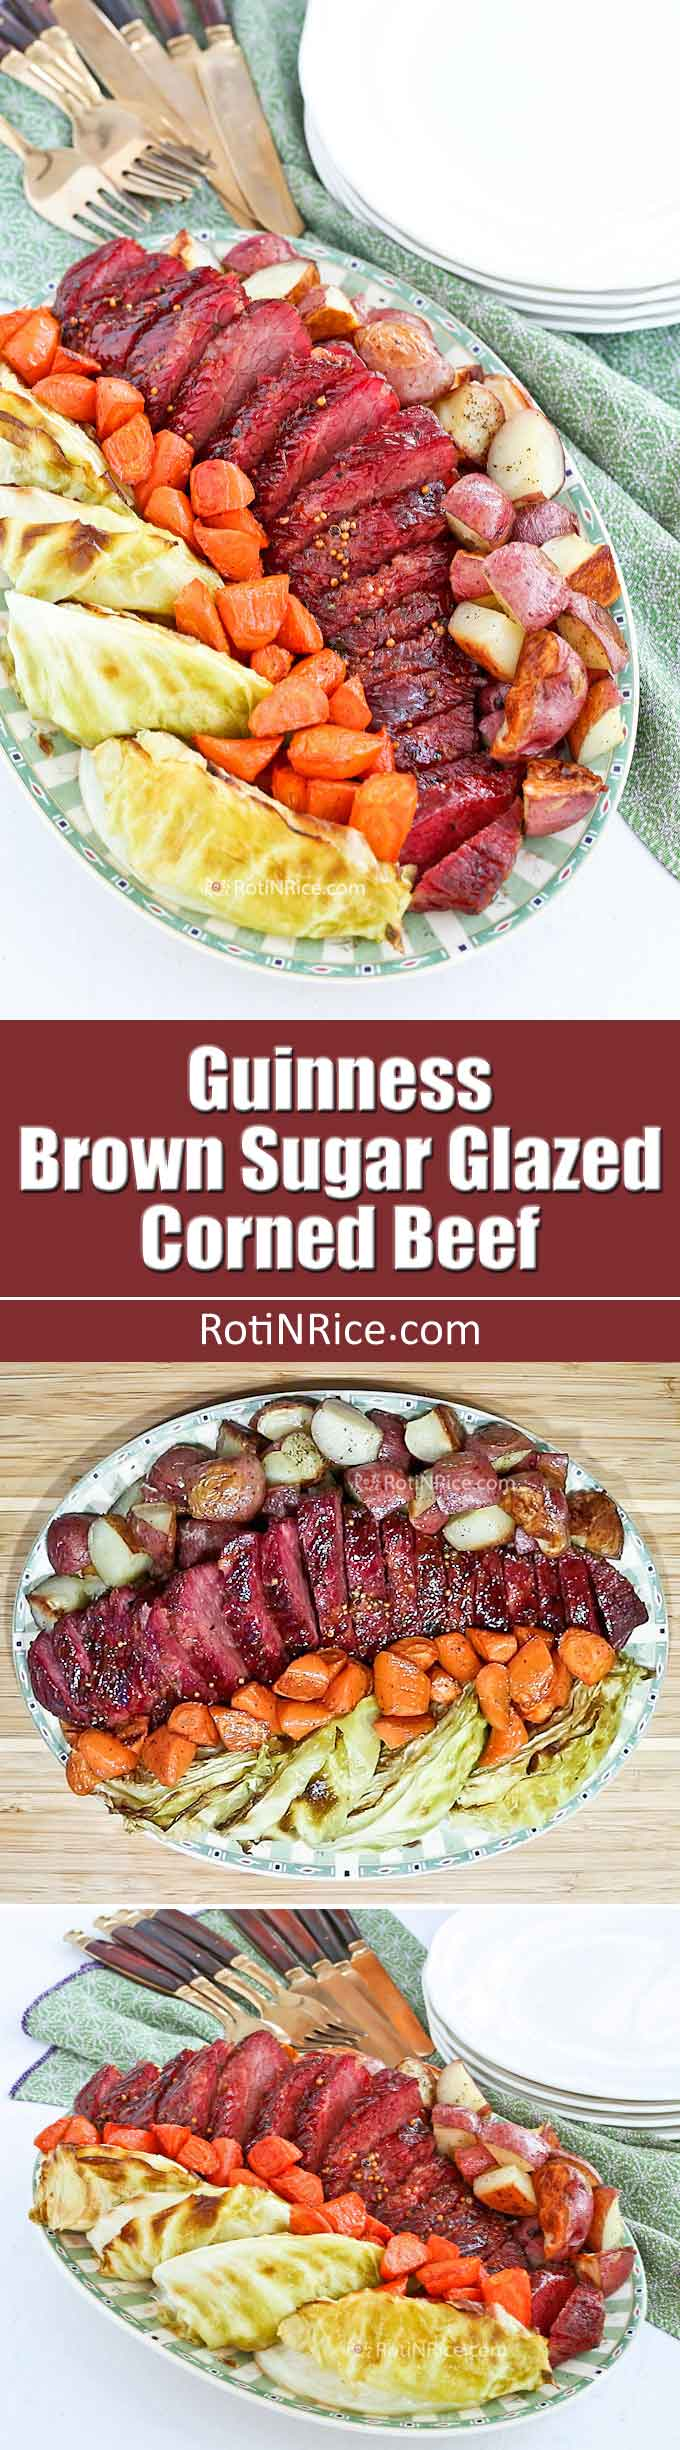 Treat family and friends to this flavorful Guinness Brown Sugar Glazed Corned Beef. The sweet malty glaze gives this roasted corned beef its distinctive flavor and beautiful appearance. A must-try! | RotiNRice.com